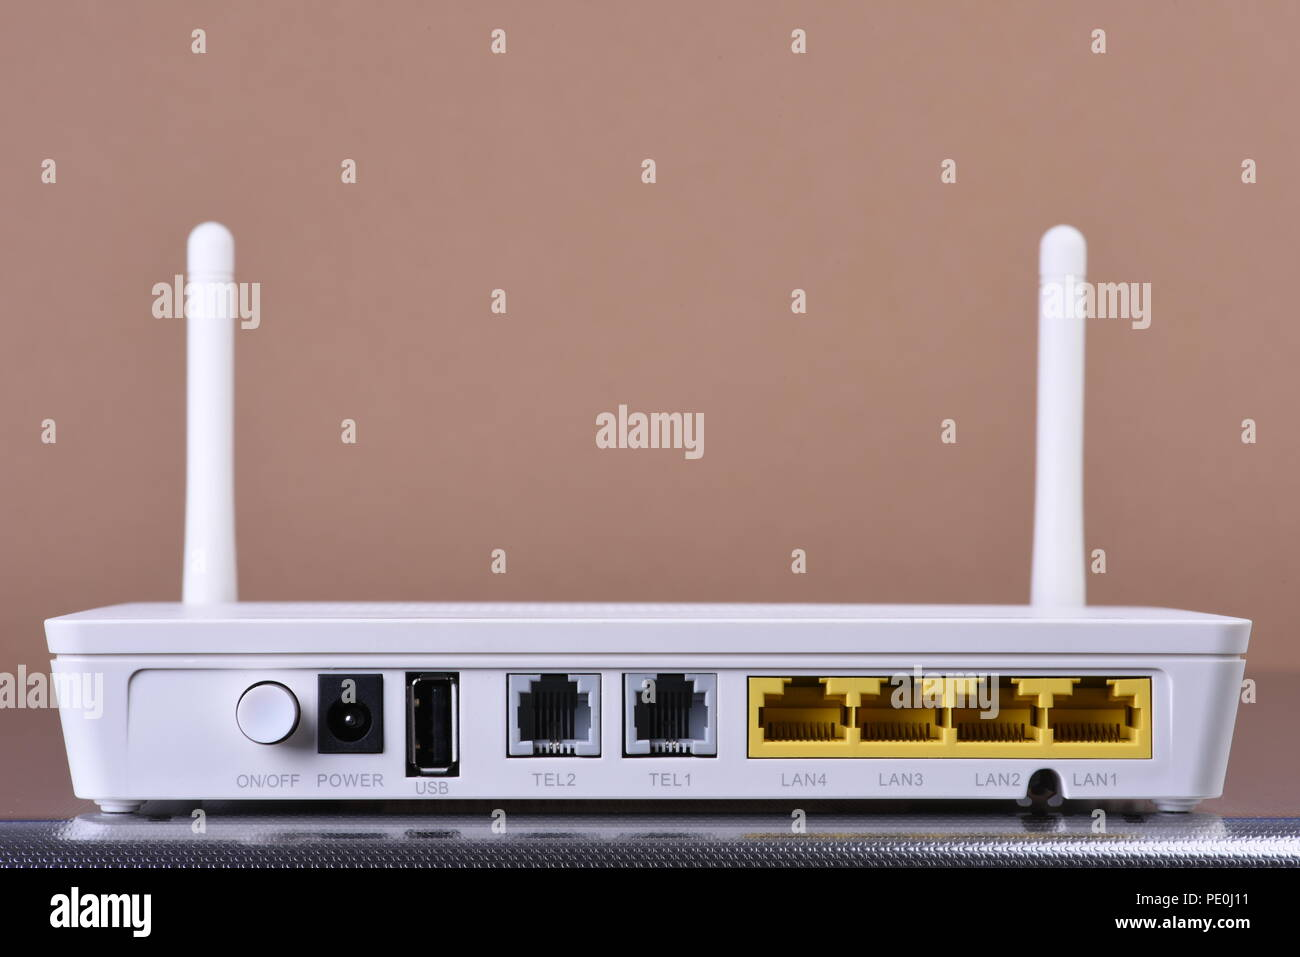 Wireless network router on brown background - Stock Image